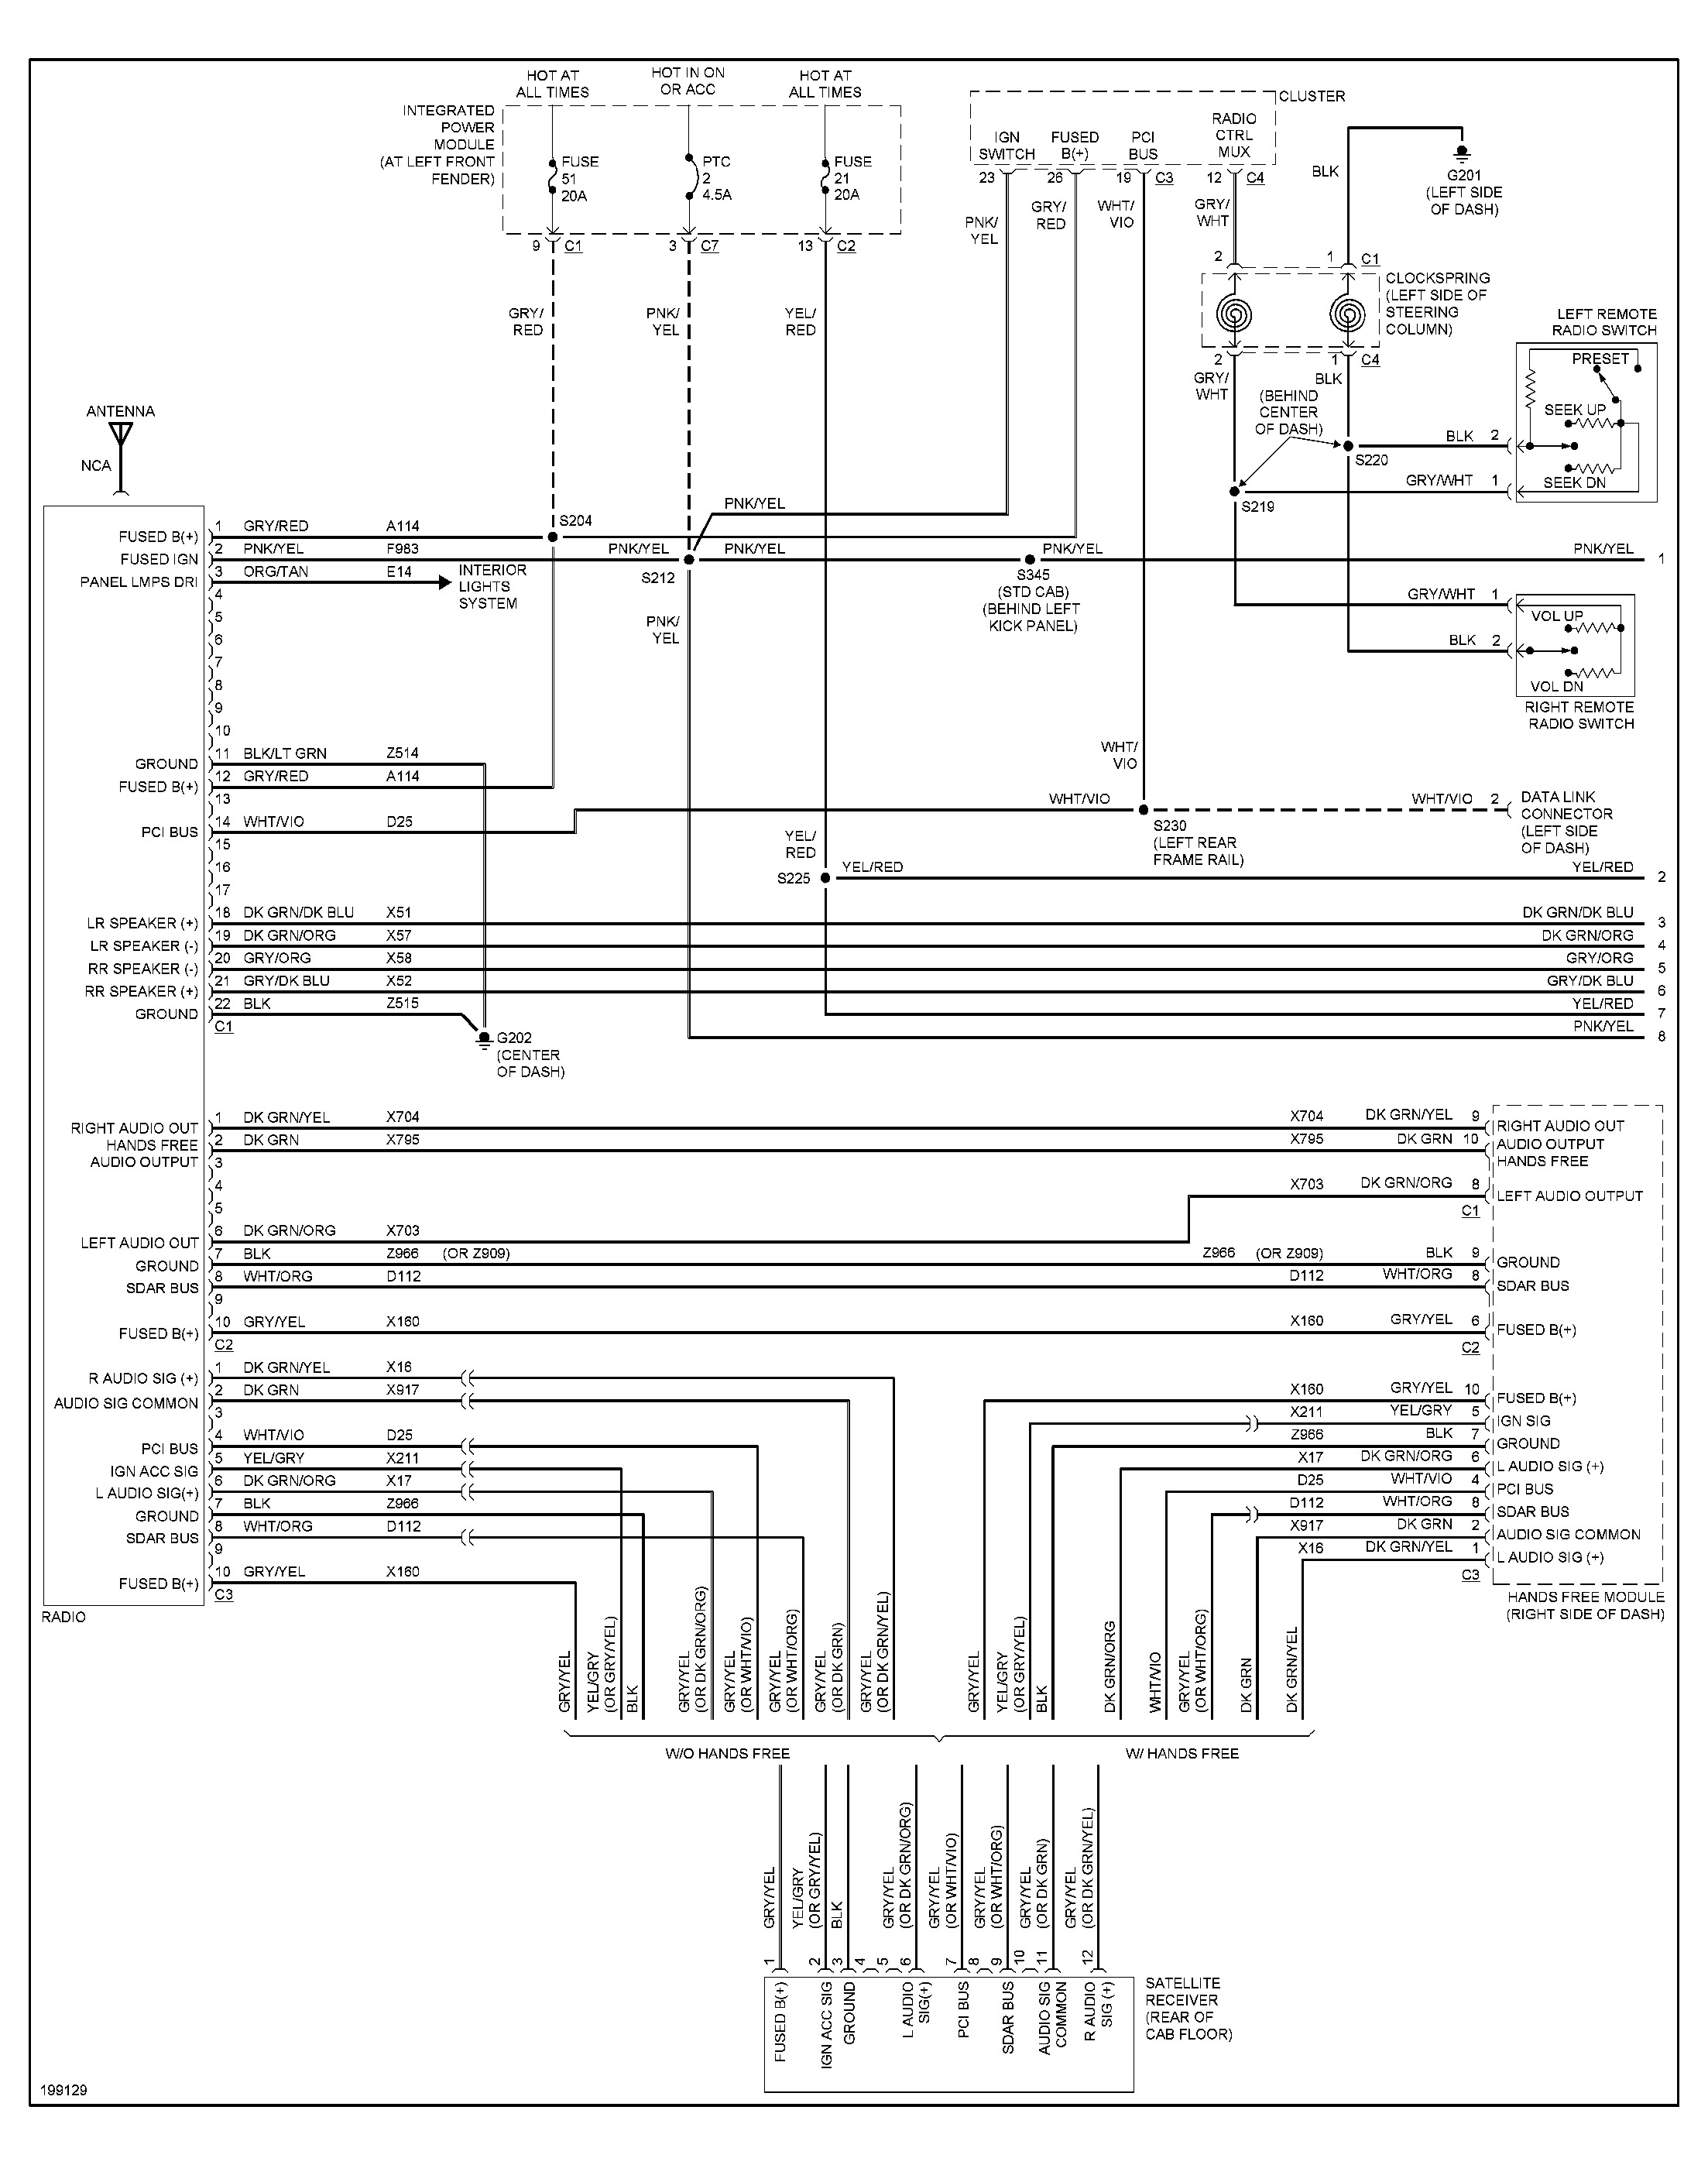 [DIAGRAM] 1995 Dodge Ram Stereo Wiring Diagram FULL